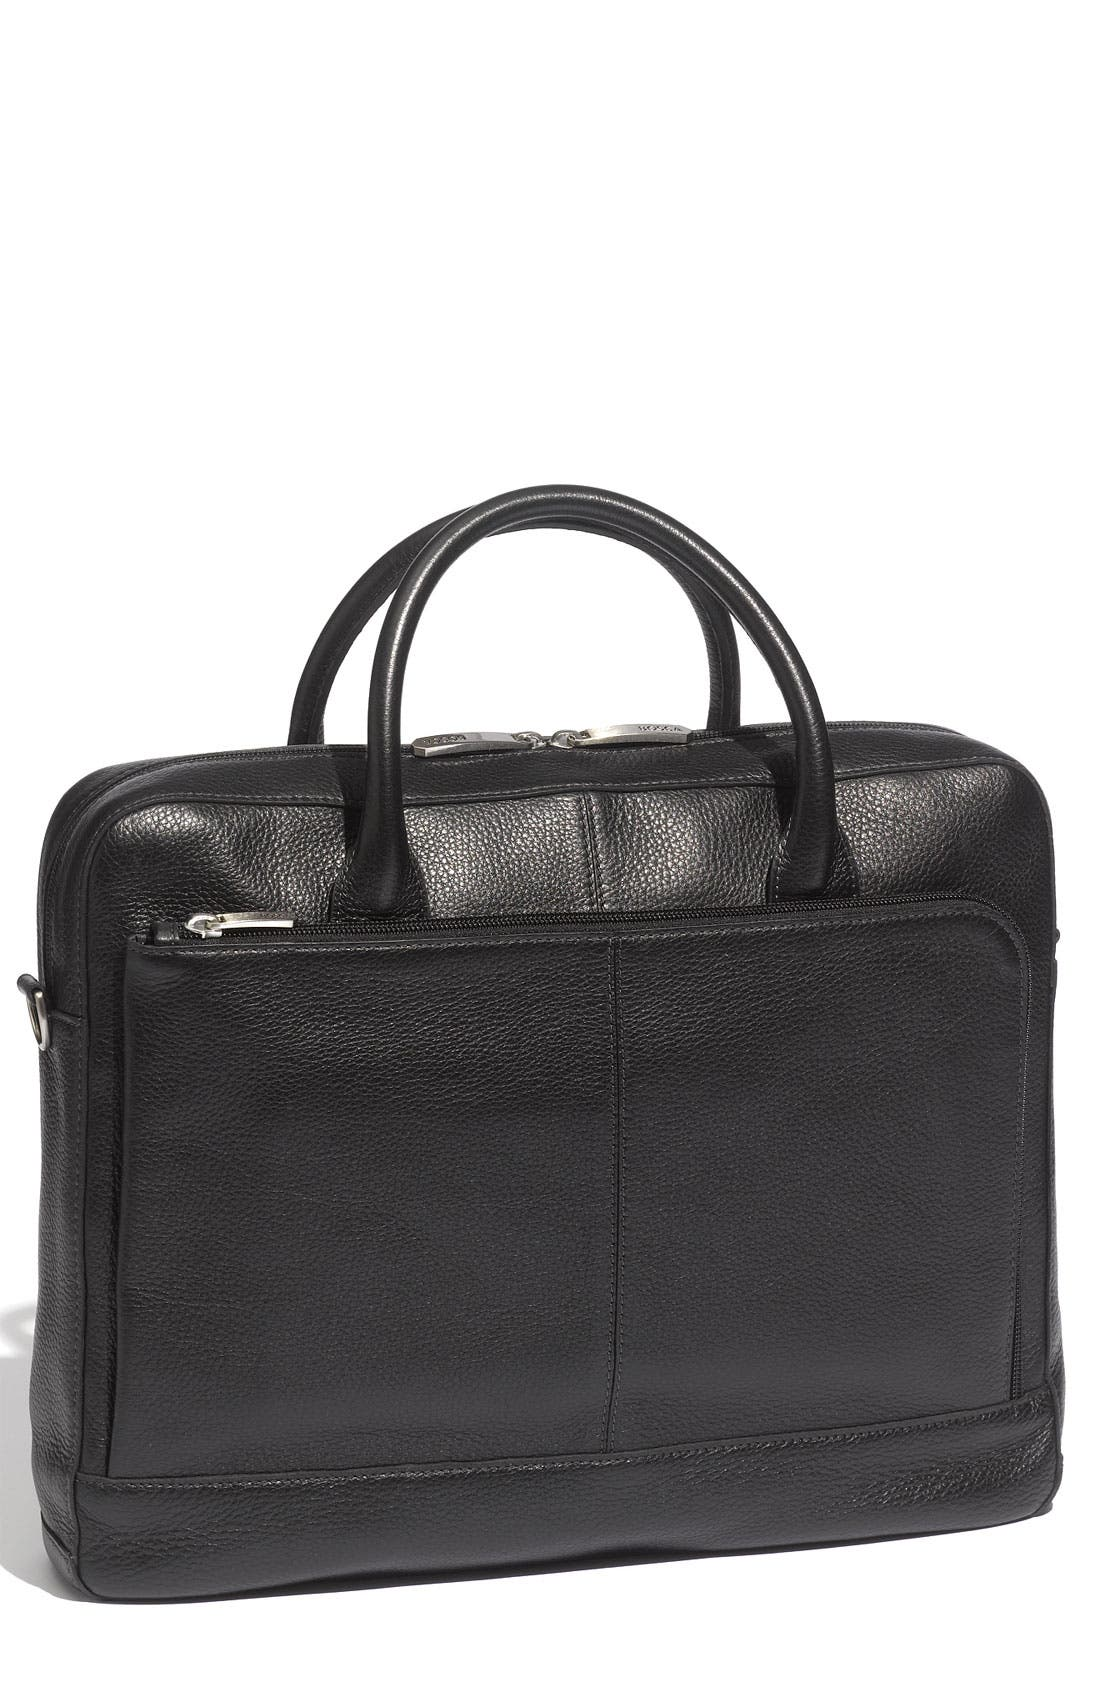 Main Image - Bosca Slim Leather Briefcase